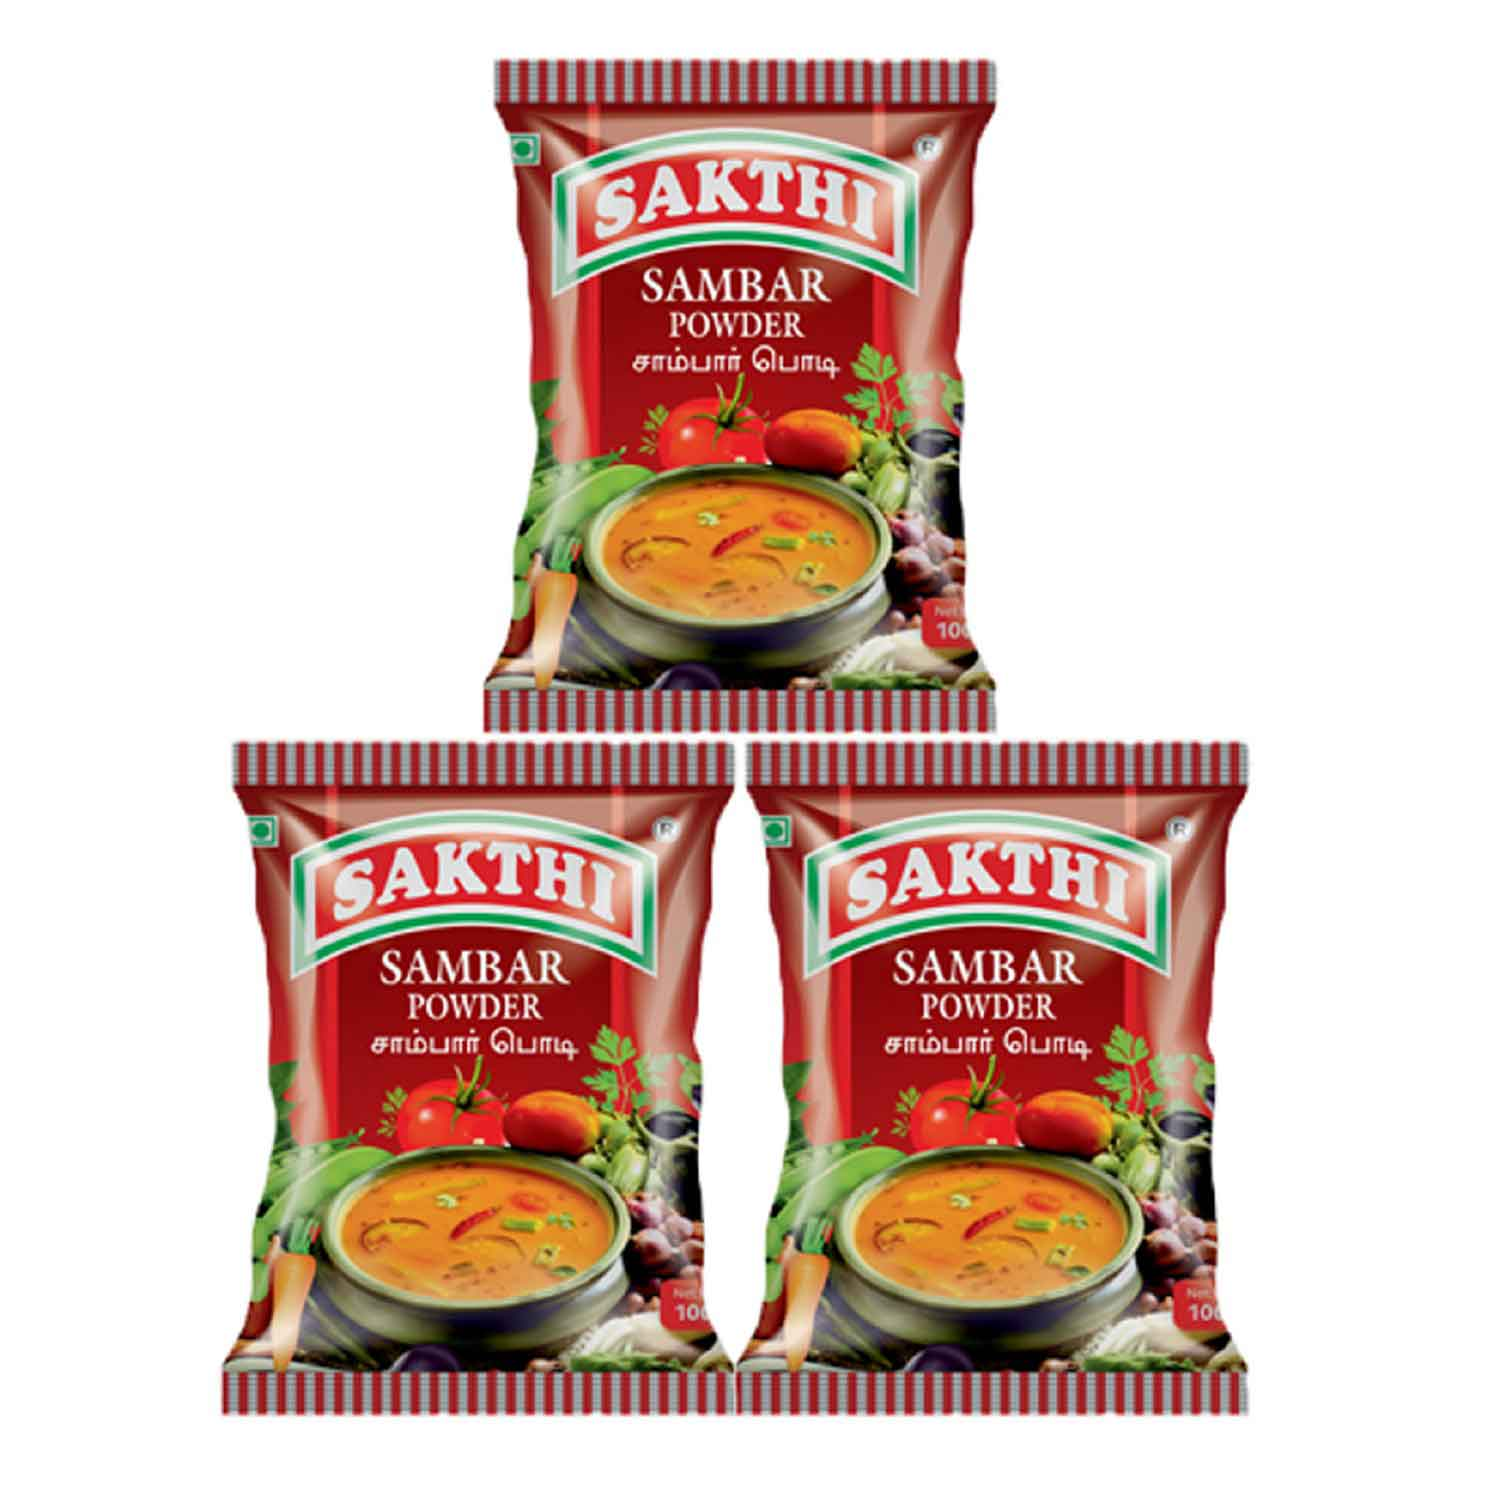 Sakthi Sambar Powder 100gm Pack of 3